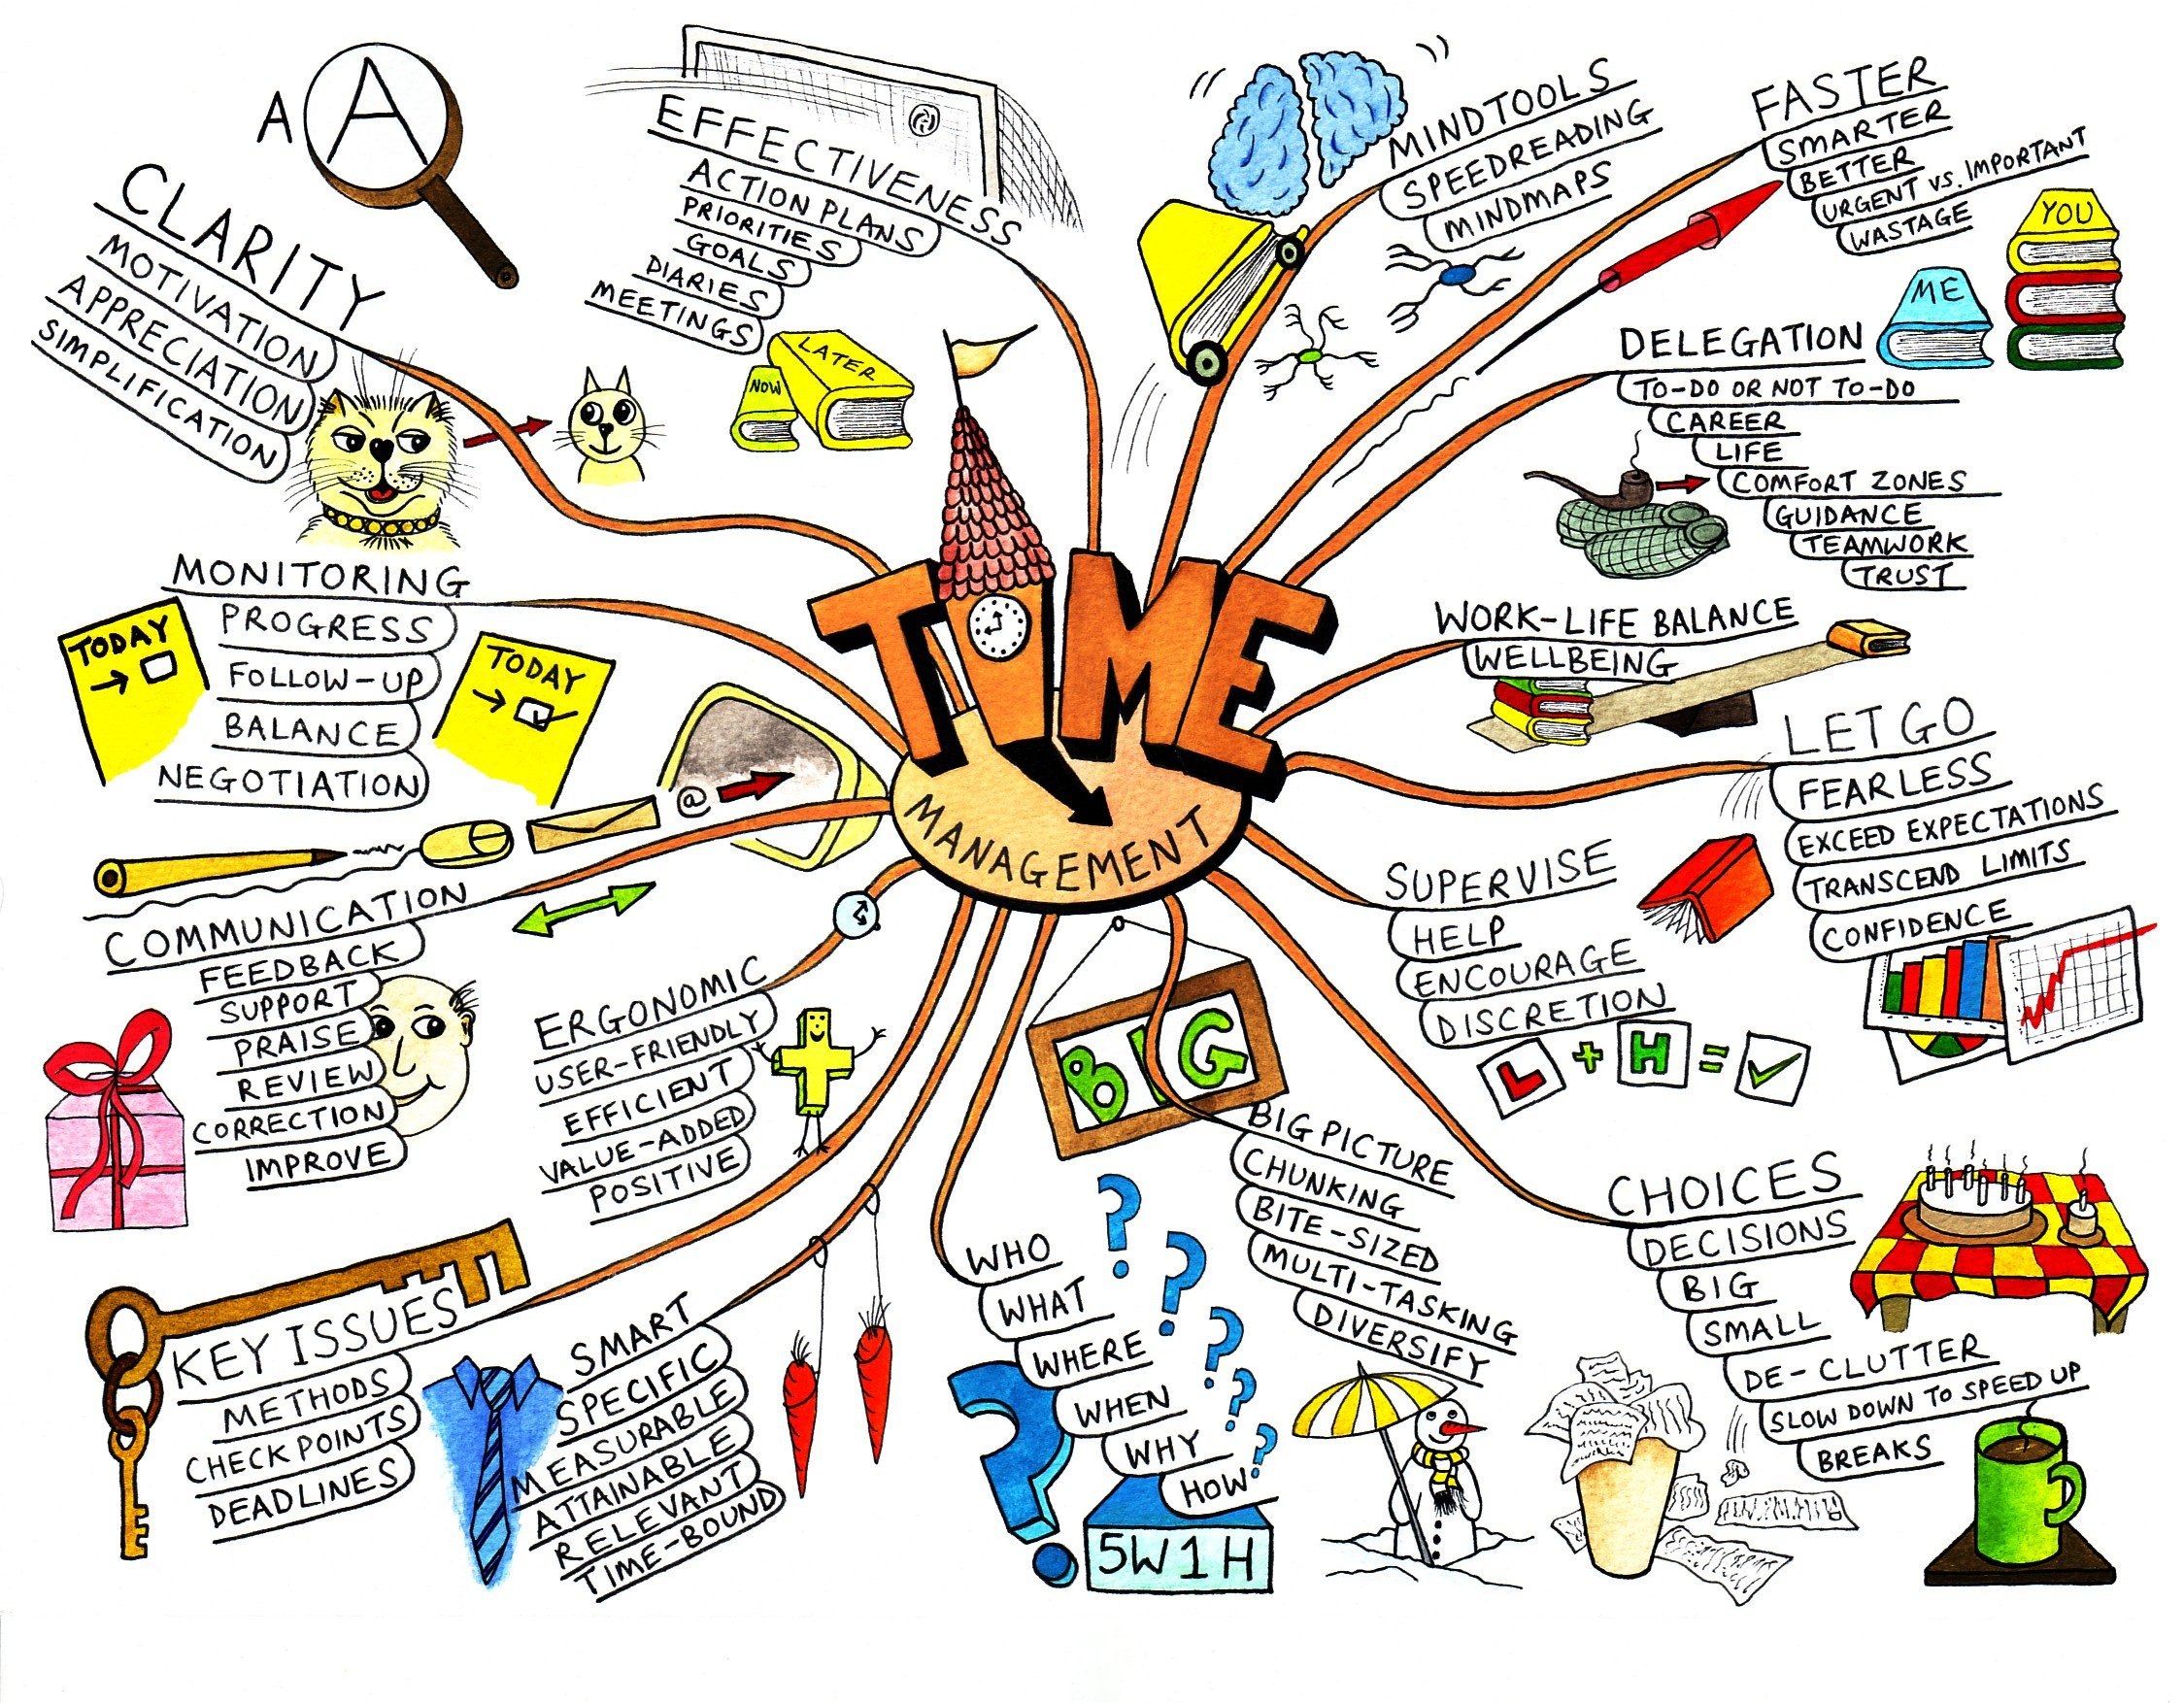 Learn how to draw Mind Maps - MindMapping Training MindTools.